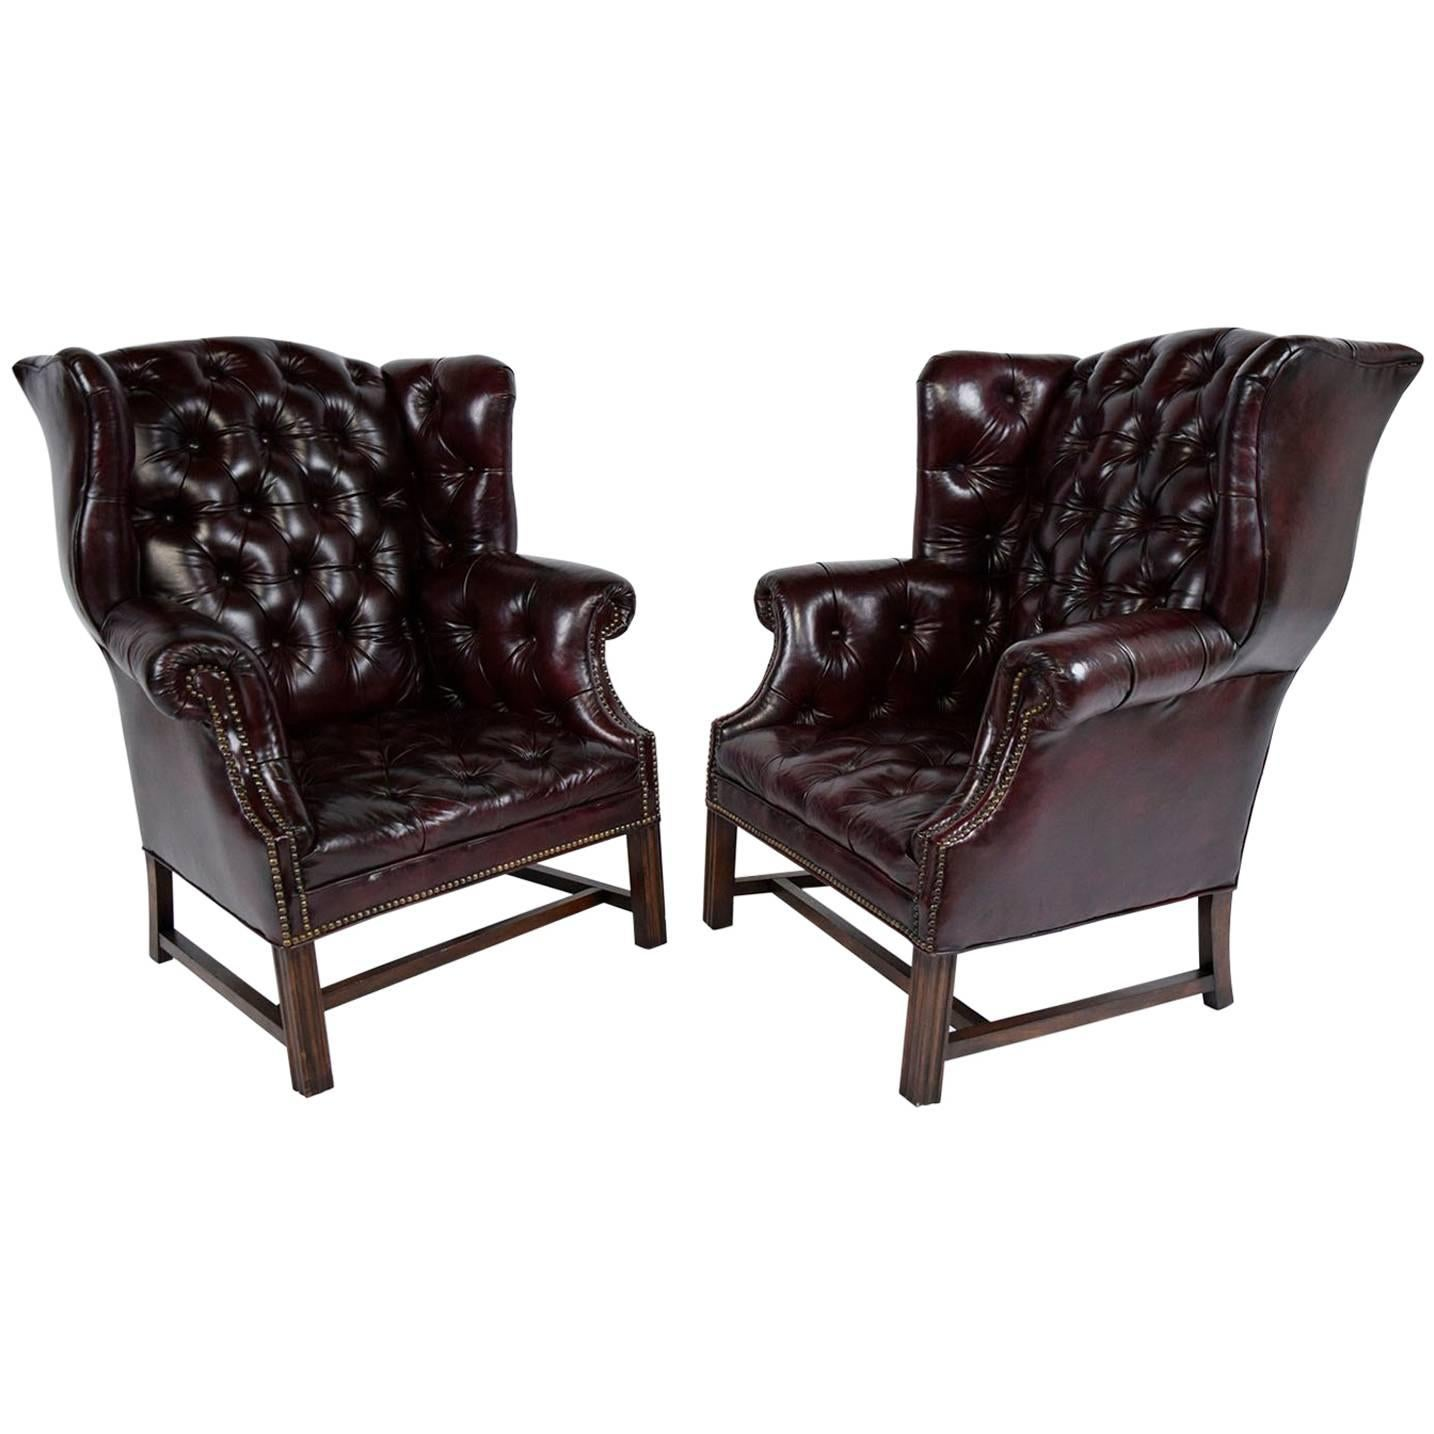 white leather wingback chair little rocking pair of chesterfield tufted chairs for sale at 1stdibs